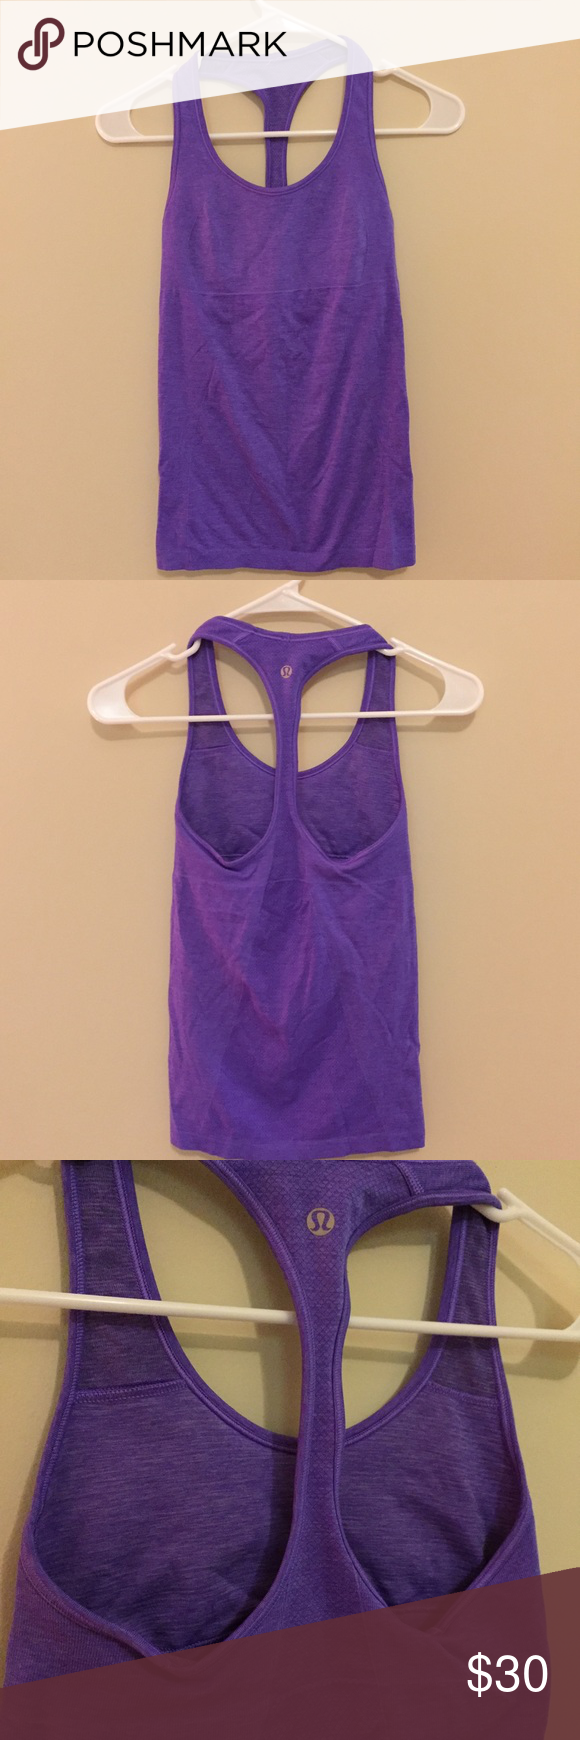 Lululemon Ebb & Flow Racerback I'm pretty sure this is the Ebb & Flow Racerback Tank. I know it's a size 4. In great condition since it is too tight for me to wear. Love the seamless feel and shelf bra. Purple is gorgeous with silverescent touch 💜 Never put in the dryer. Non-smoker. No trades. (I also have this in black!) lululemon athletica Tops Tank Tops